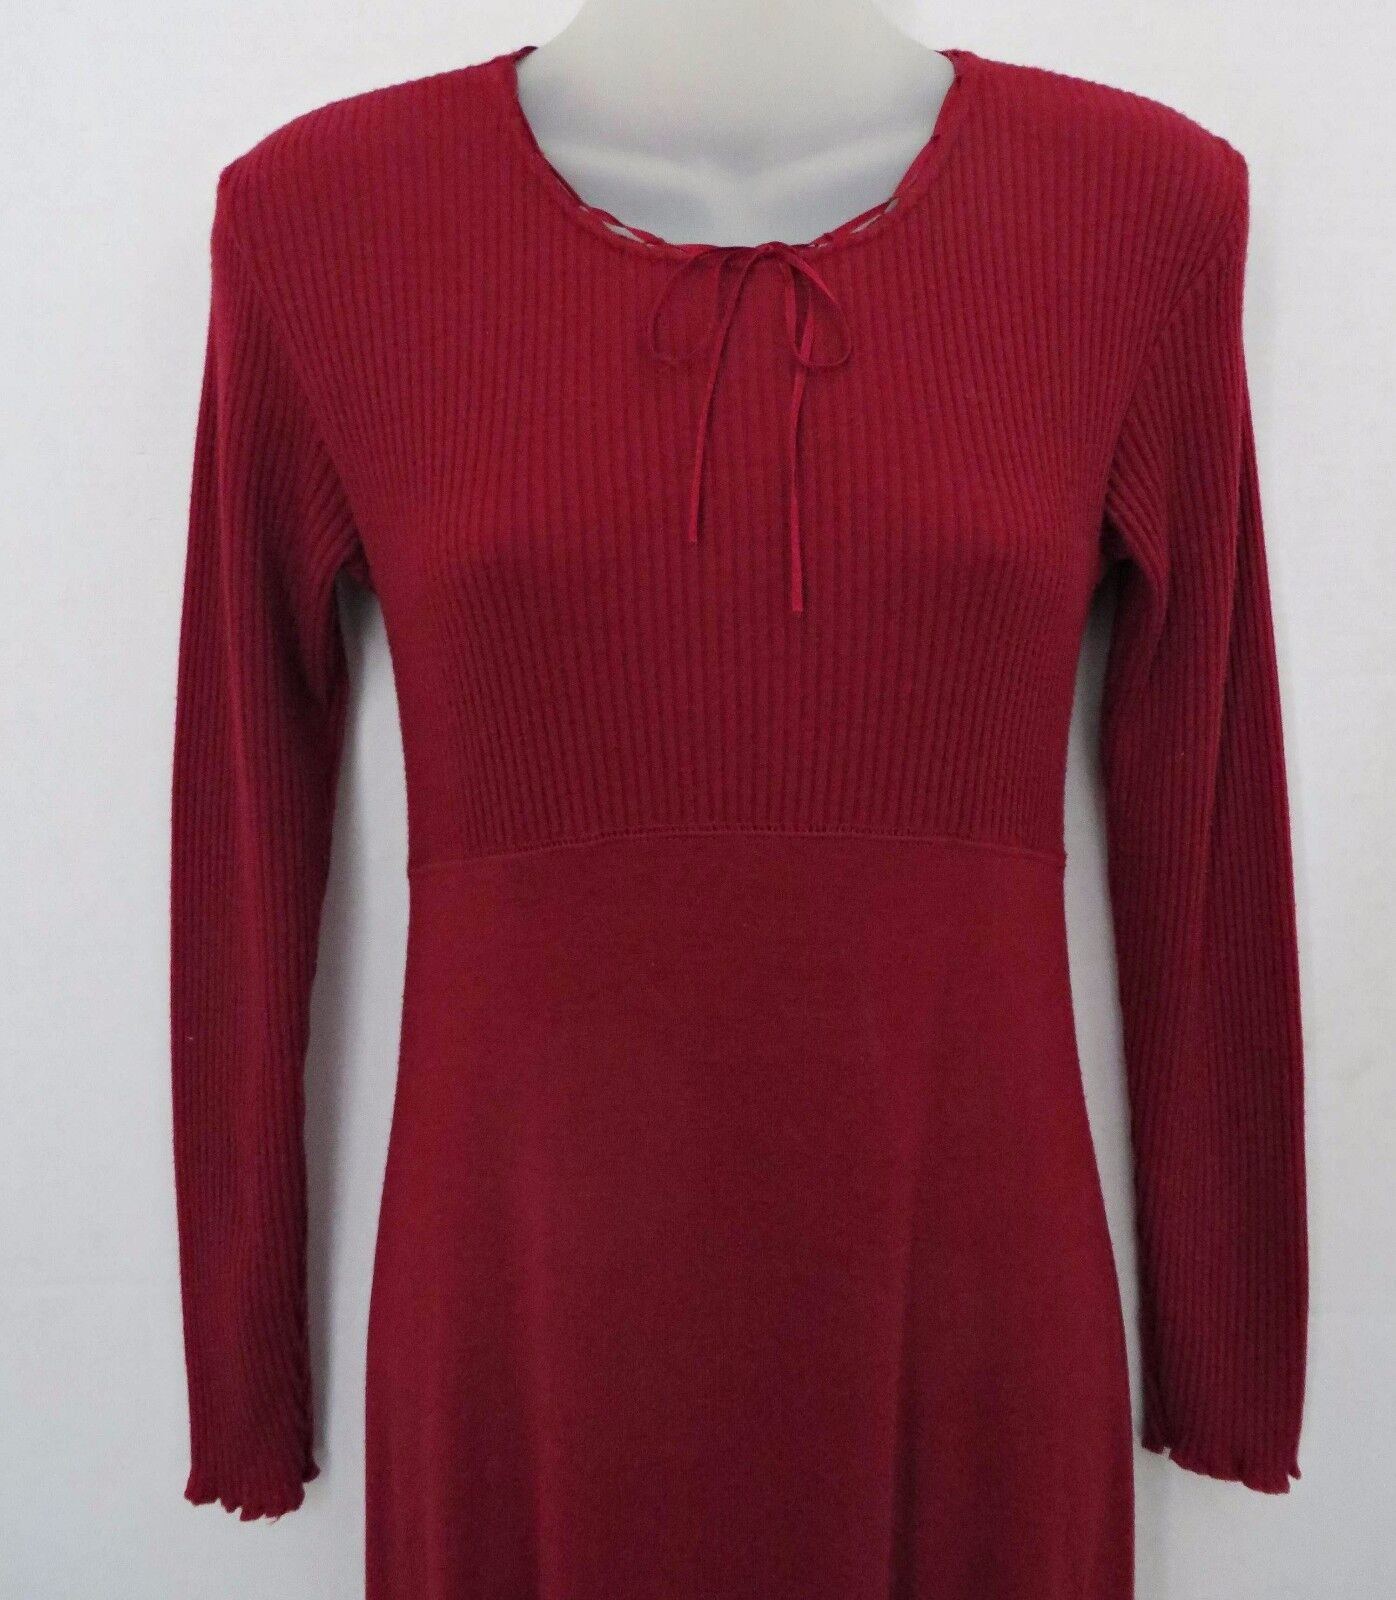 Vtg 1980's LIMITED LONDON PARIS NEW YORK Long Maxi Knit Red Maroon Dress Size XS